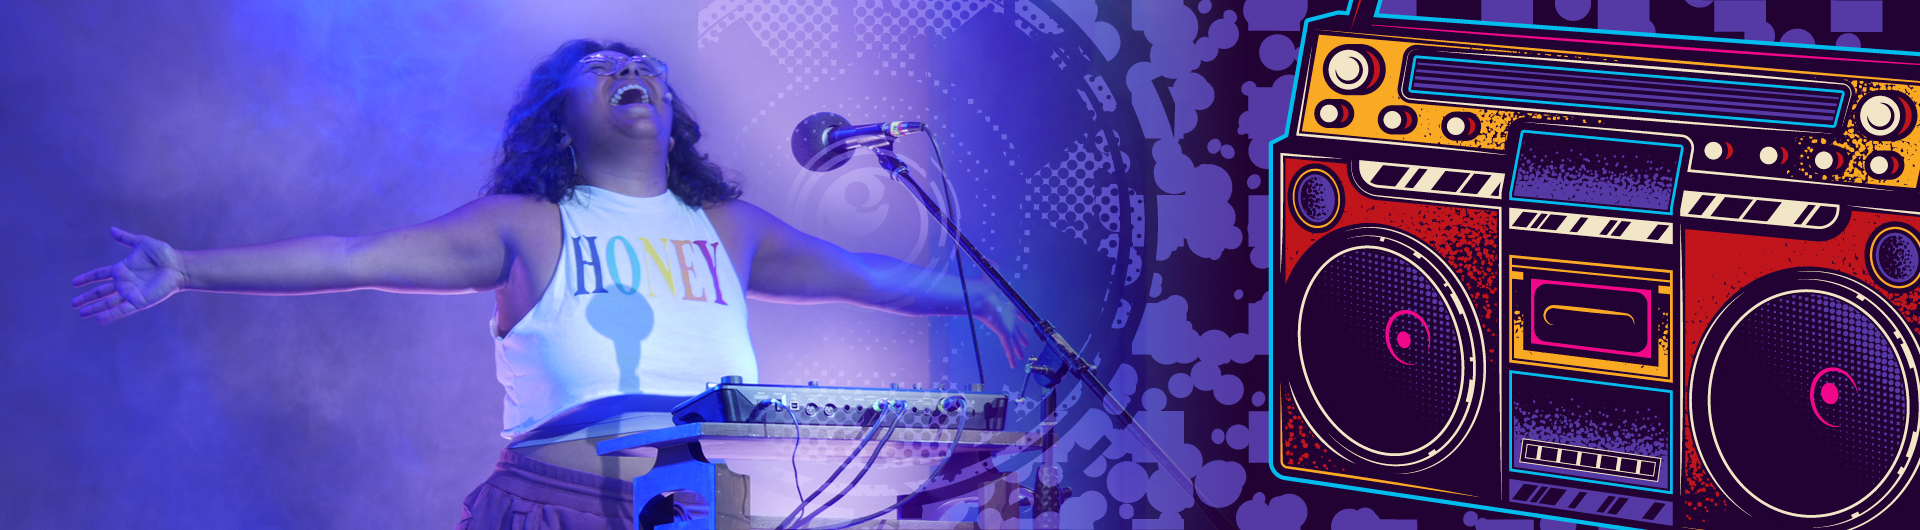 Actress singing with keyboard and boom box in purple tones